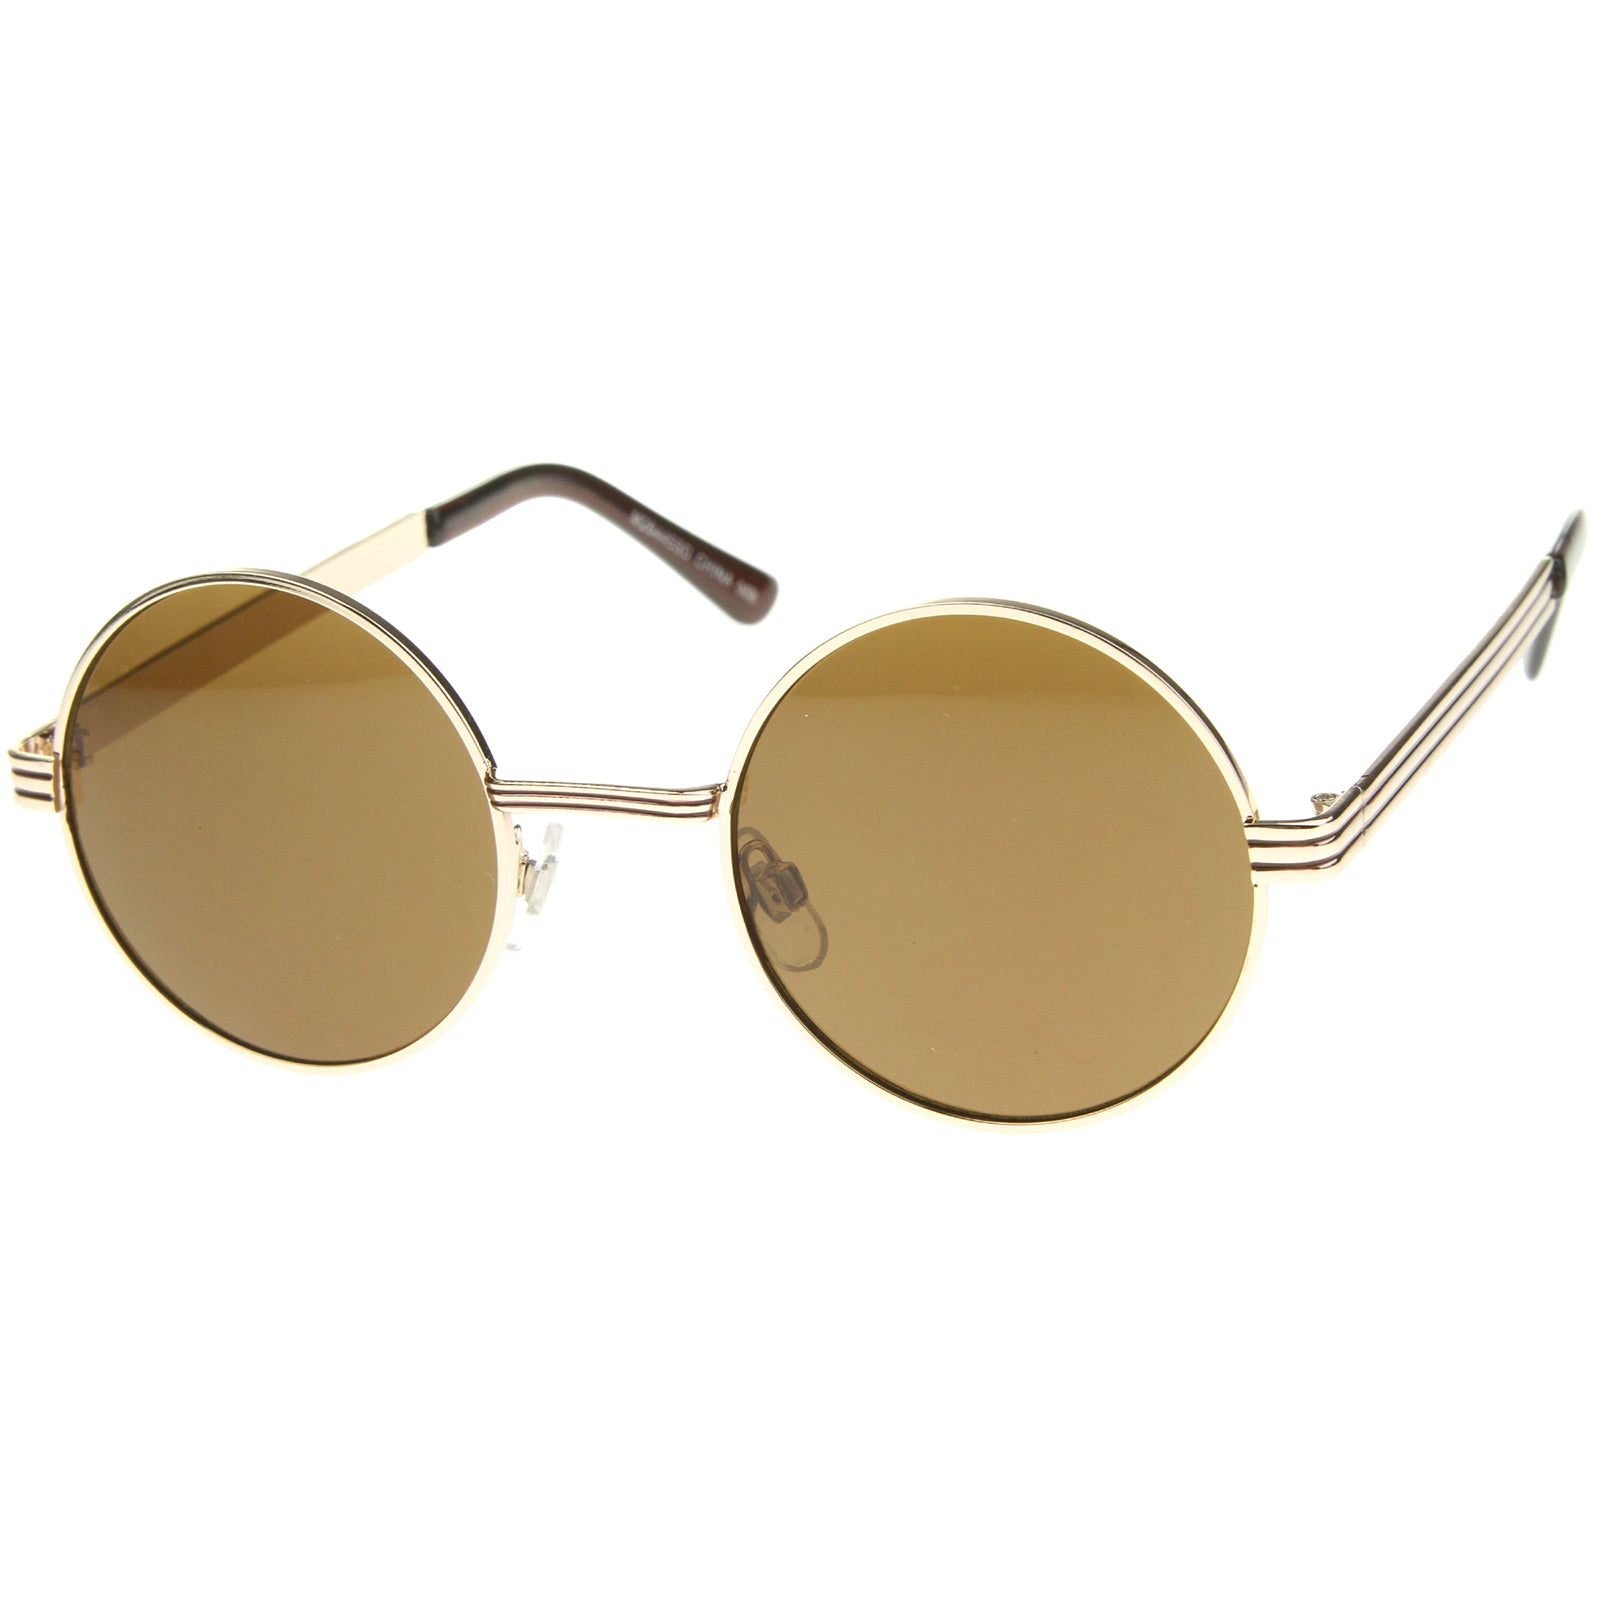 Retro Fashion Metal Textured Frame Flat Lens Round Sunglasses 50mm - sunglass.la - 6